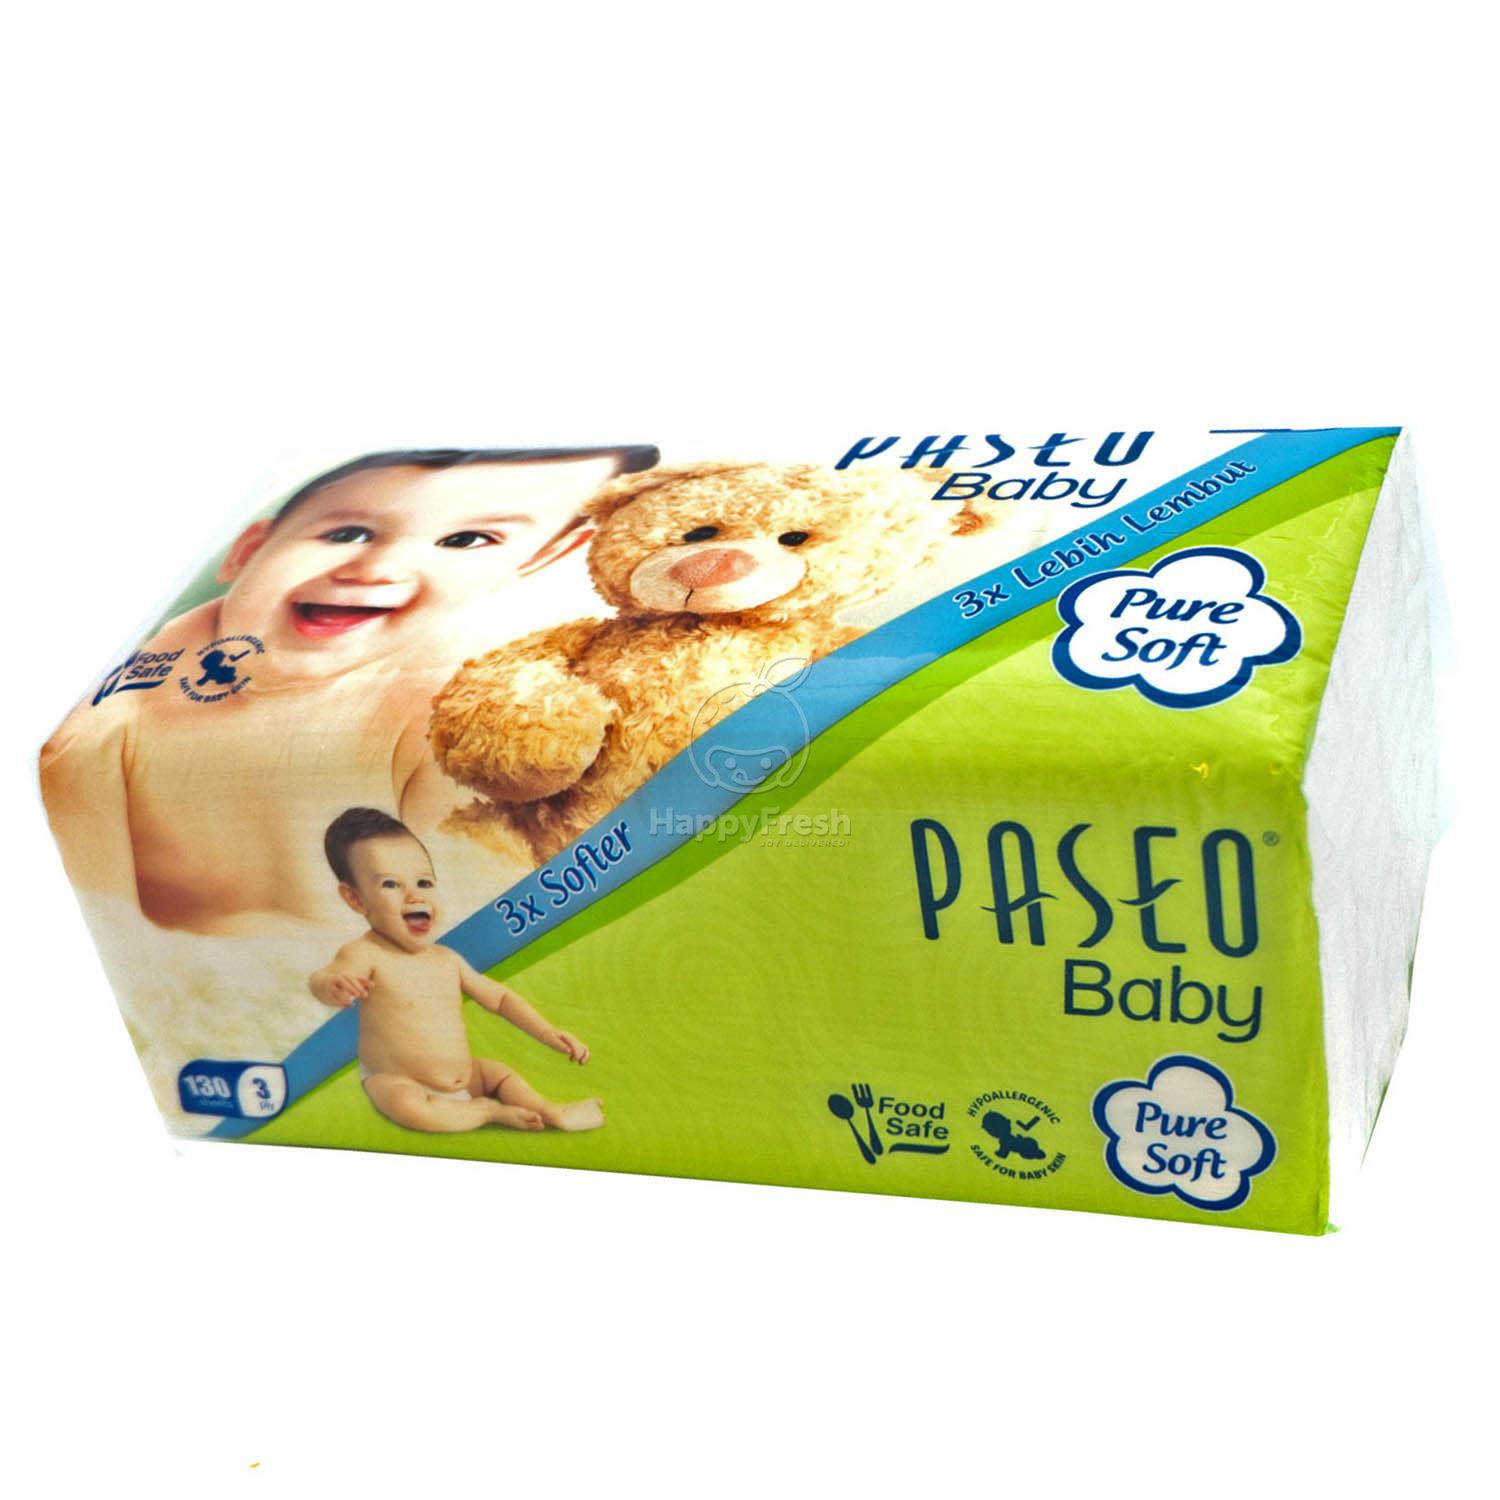 Tissue Paper Products Paseo 4 In 1 Tisu Wajah Smart 250 Sheets 424594209a9c7ea90a7dde7e5701aab4f33ffd12 Wide1480579159